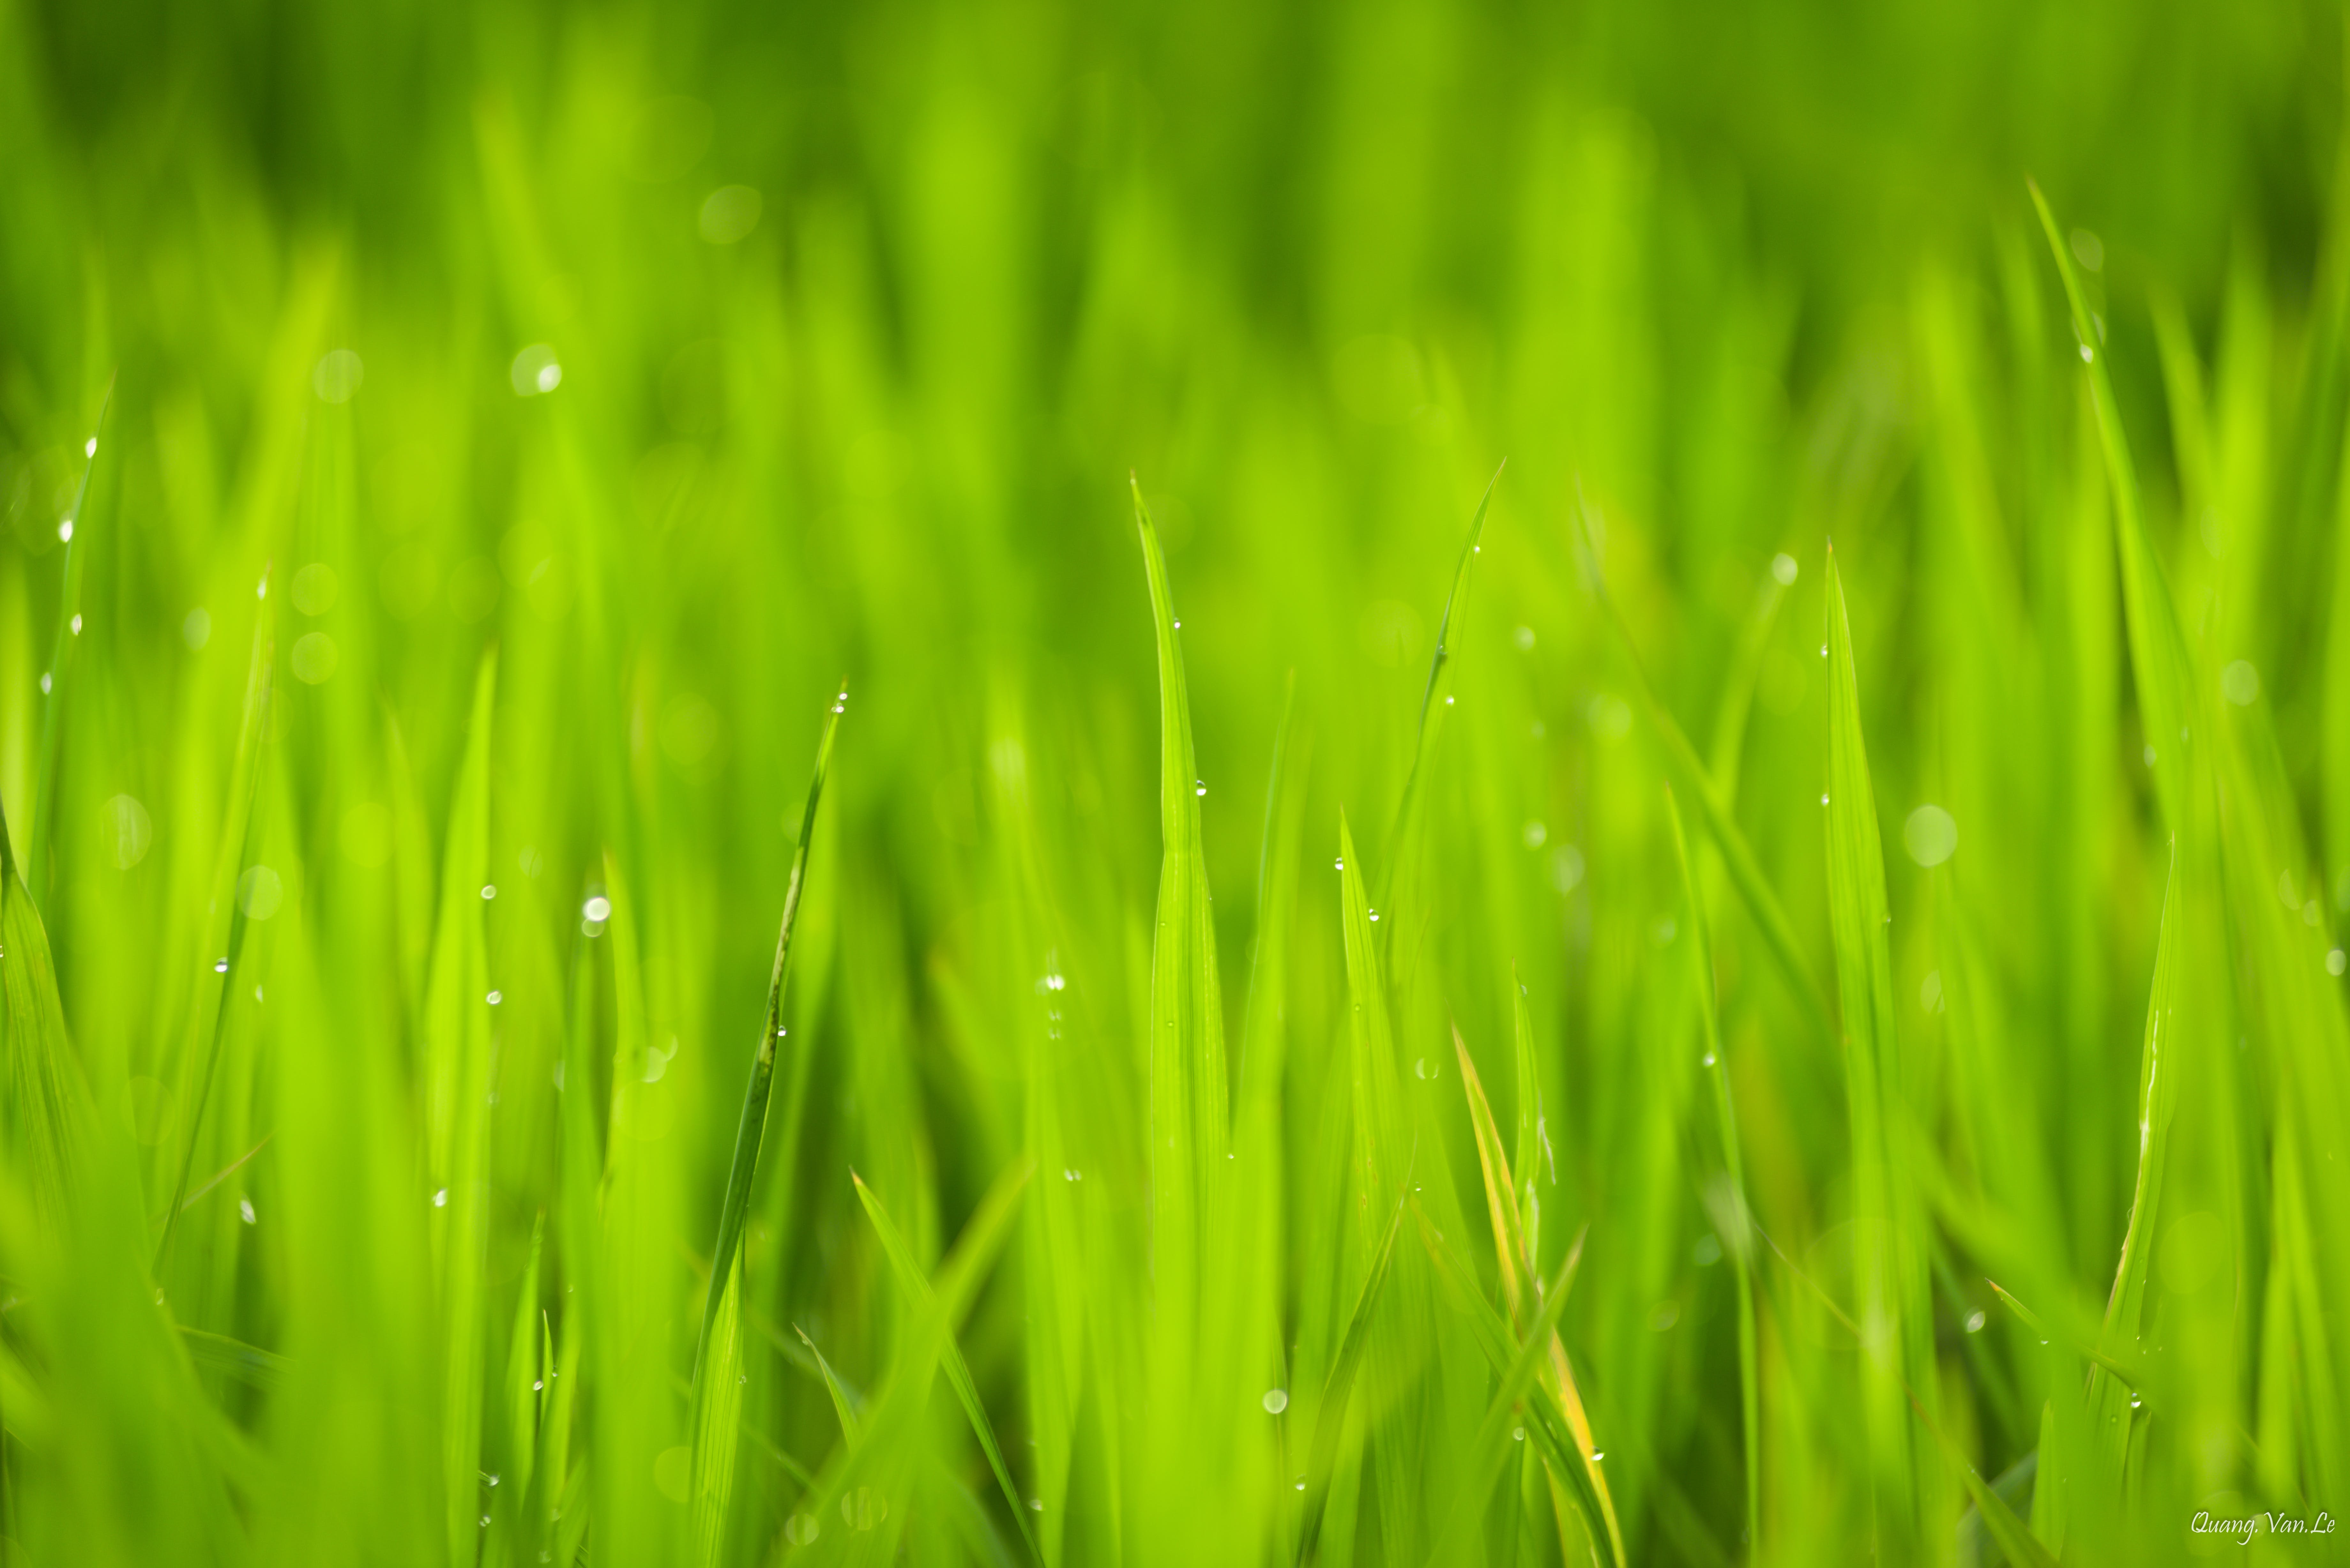 Close Up Photo of Green Grass Under Sunny Sky during Daytime